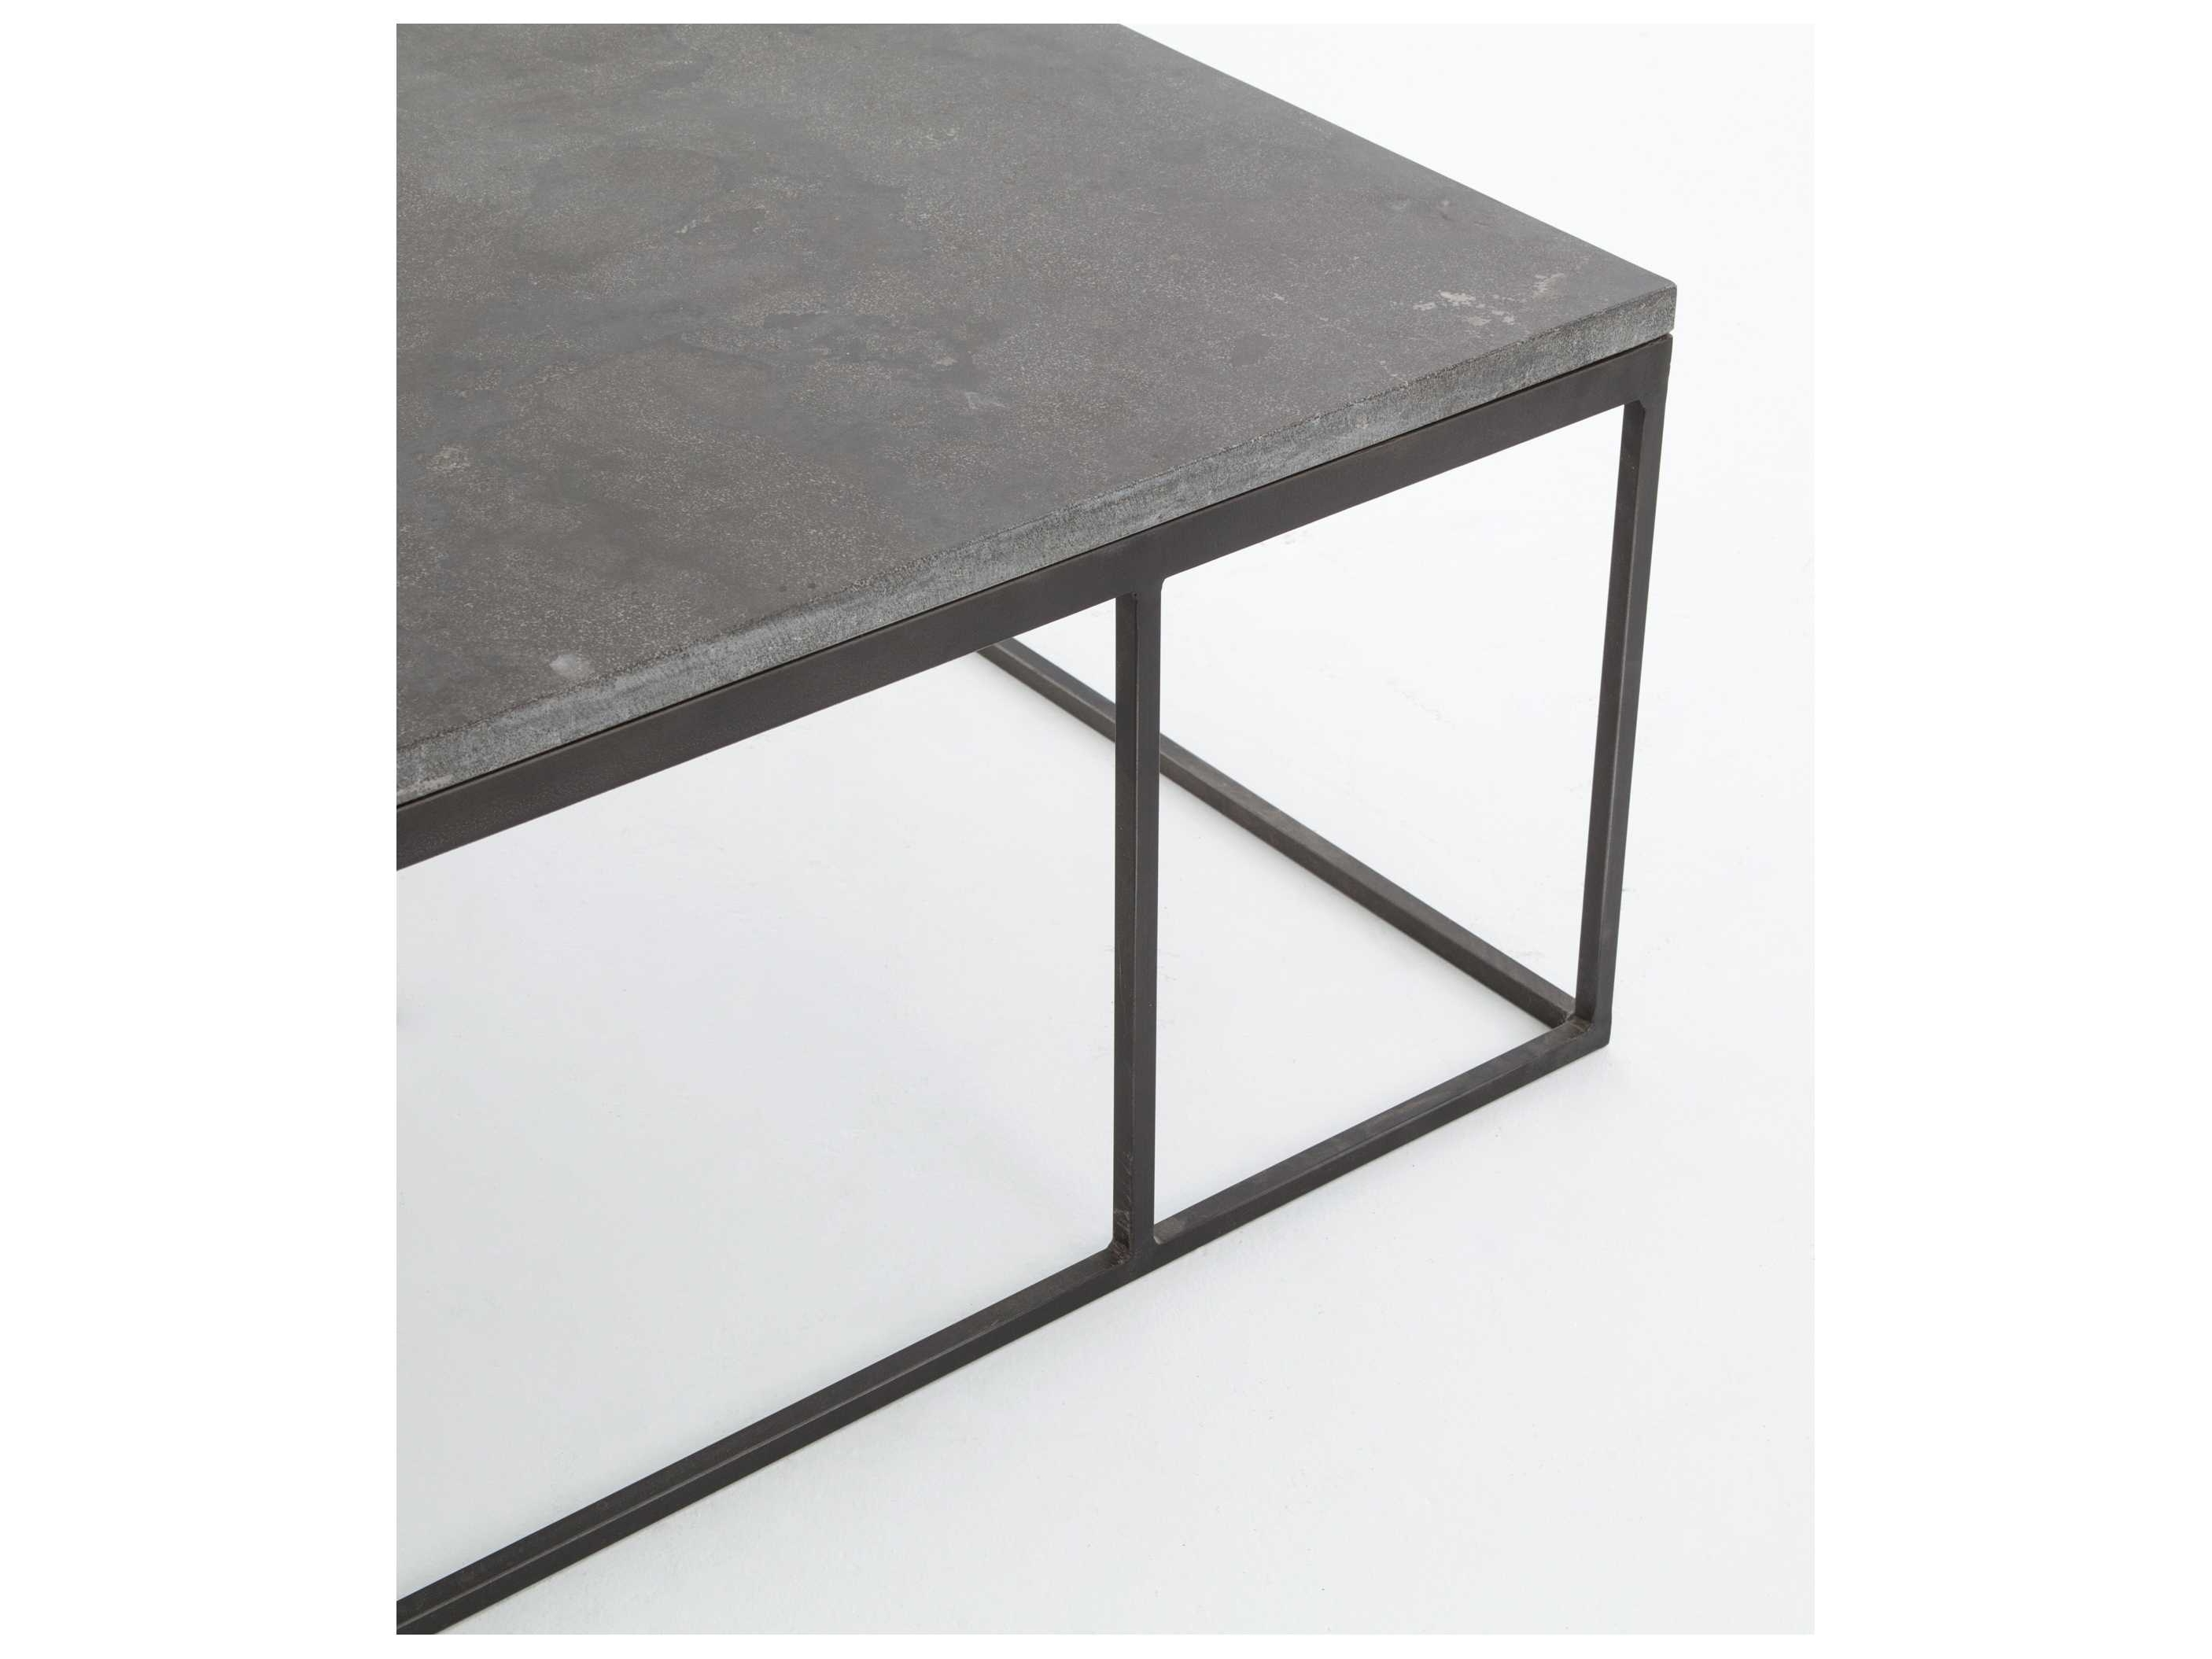 Newest Bluestone Rustic Black Coffee Tables Intended For Four Hands Hughes Bluestone 60 X 28 Rectangular Harlow Small Coffee (View 15 of 20)